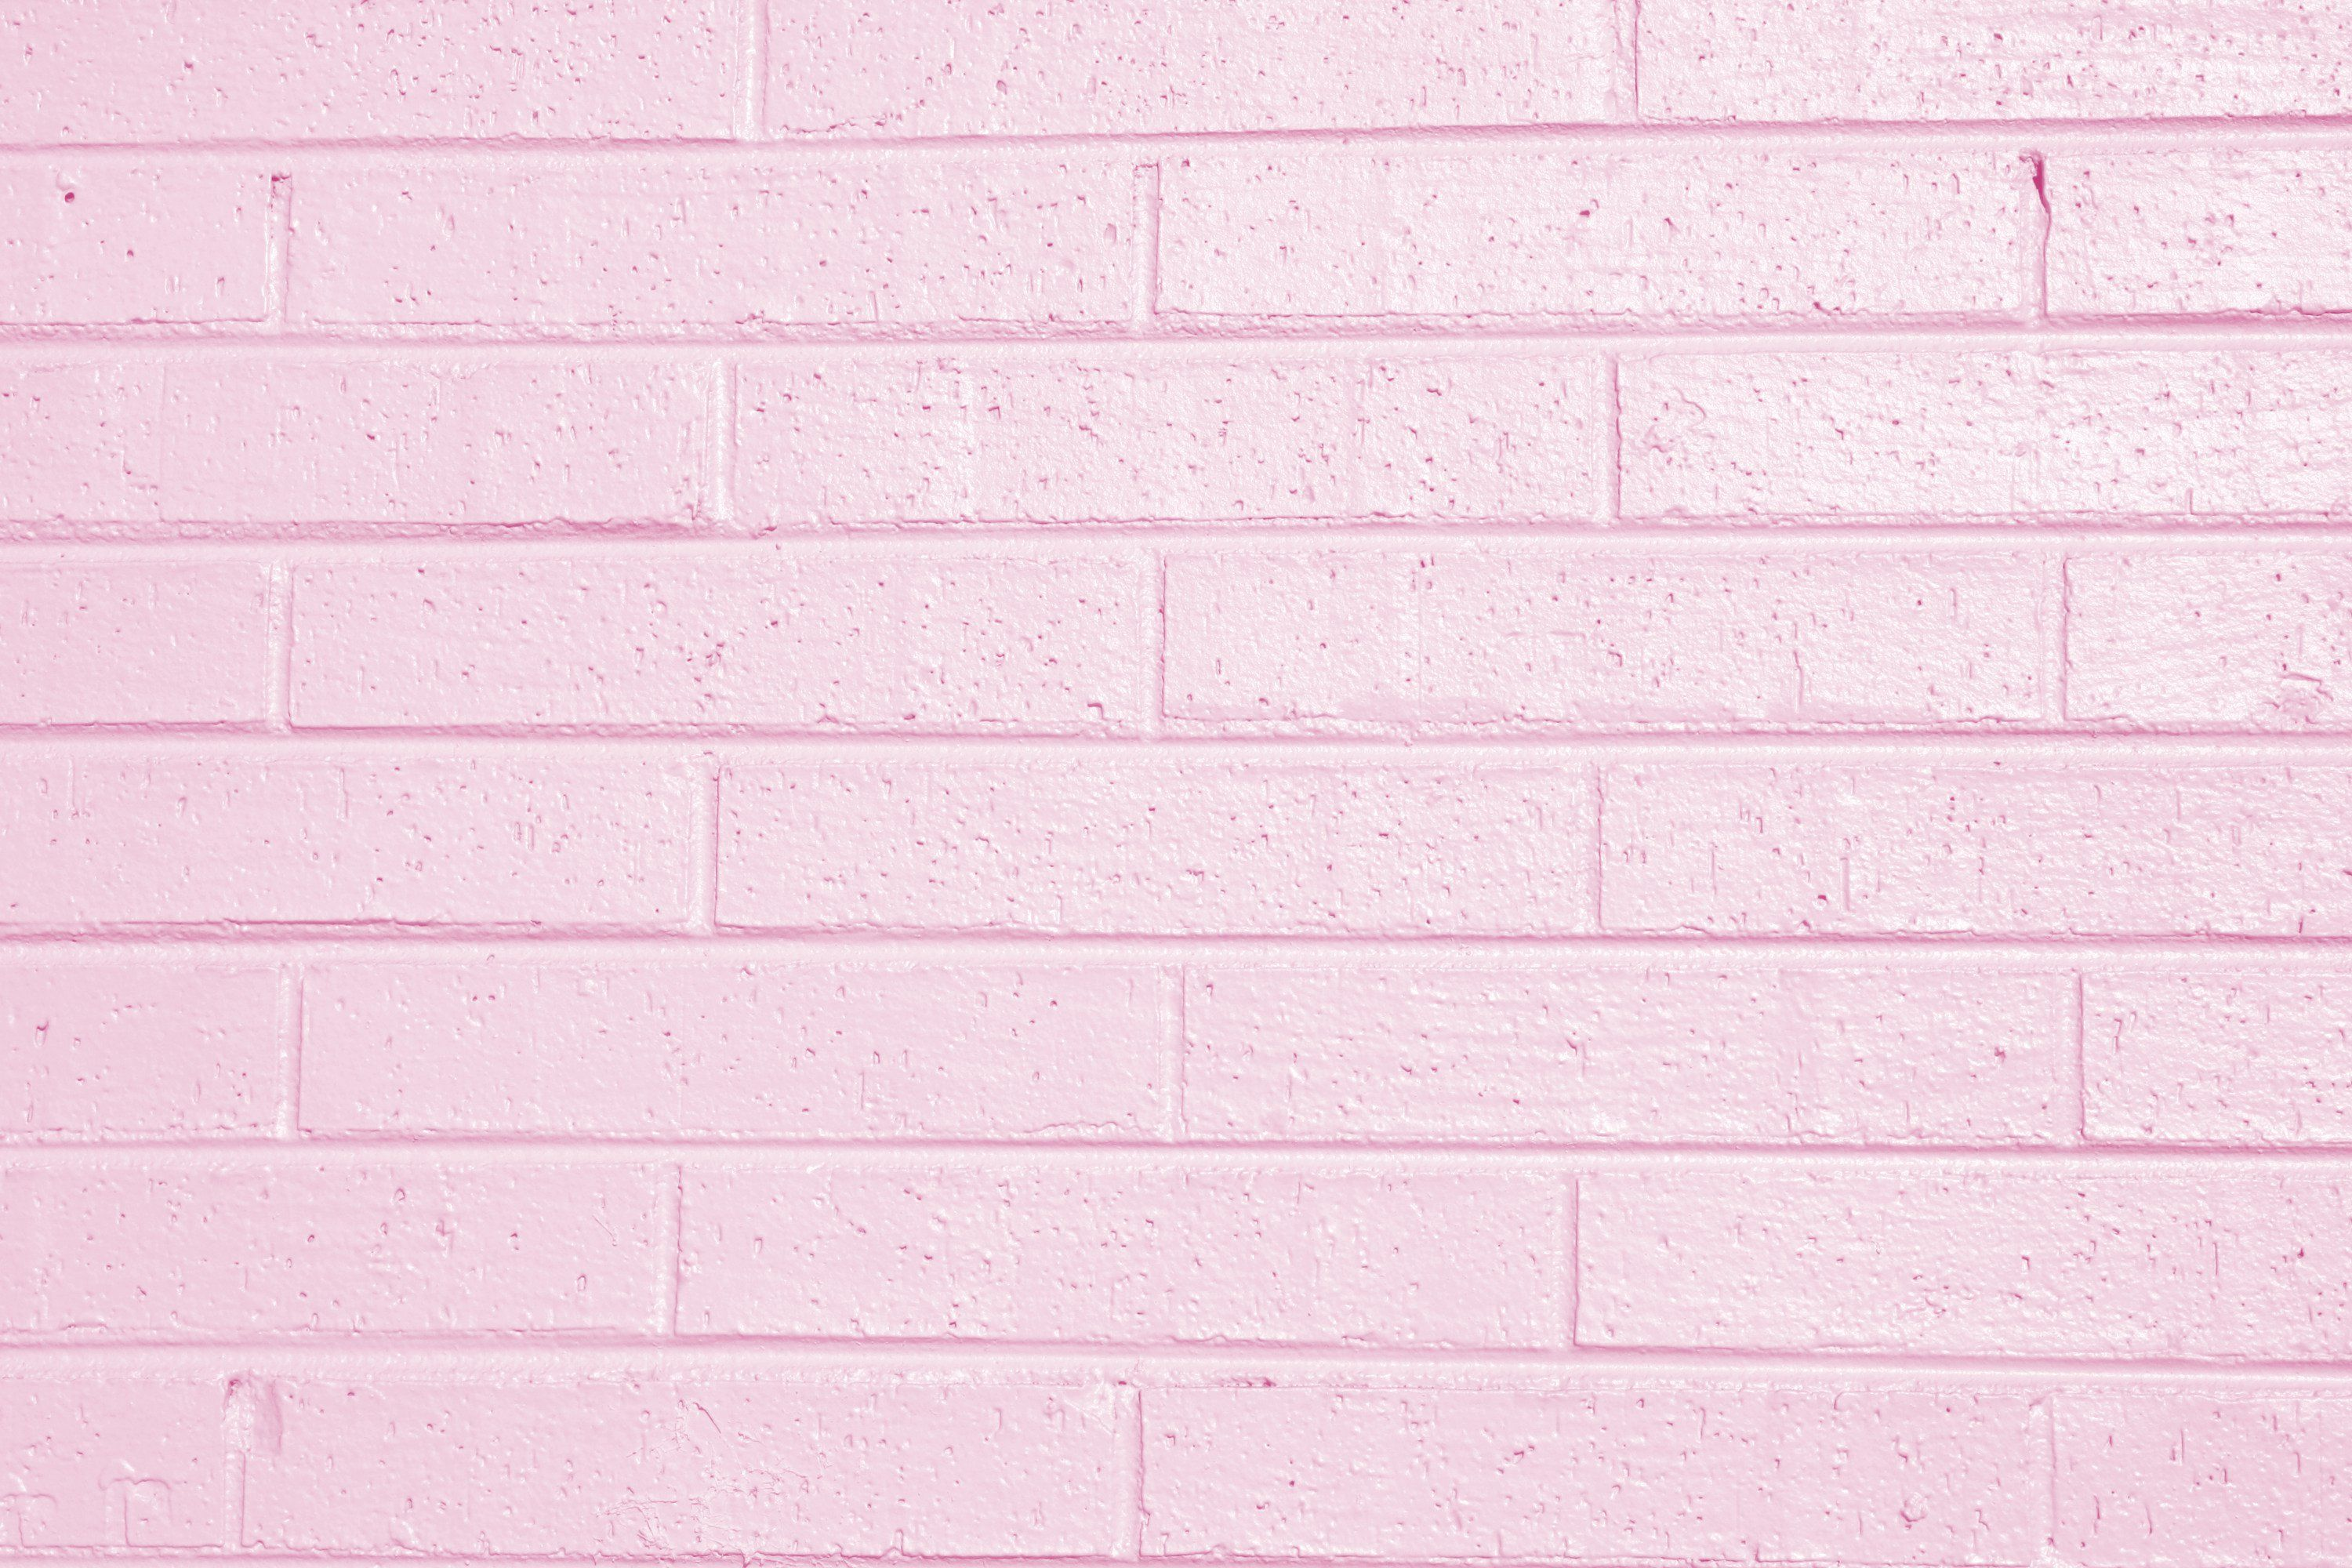 Pink Painted Brick Wall Texture Picture Free Photograph